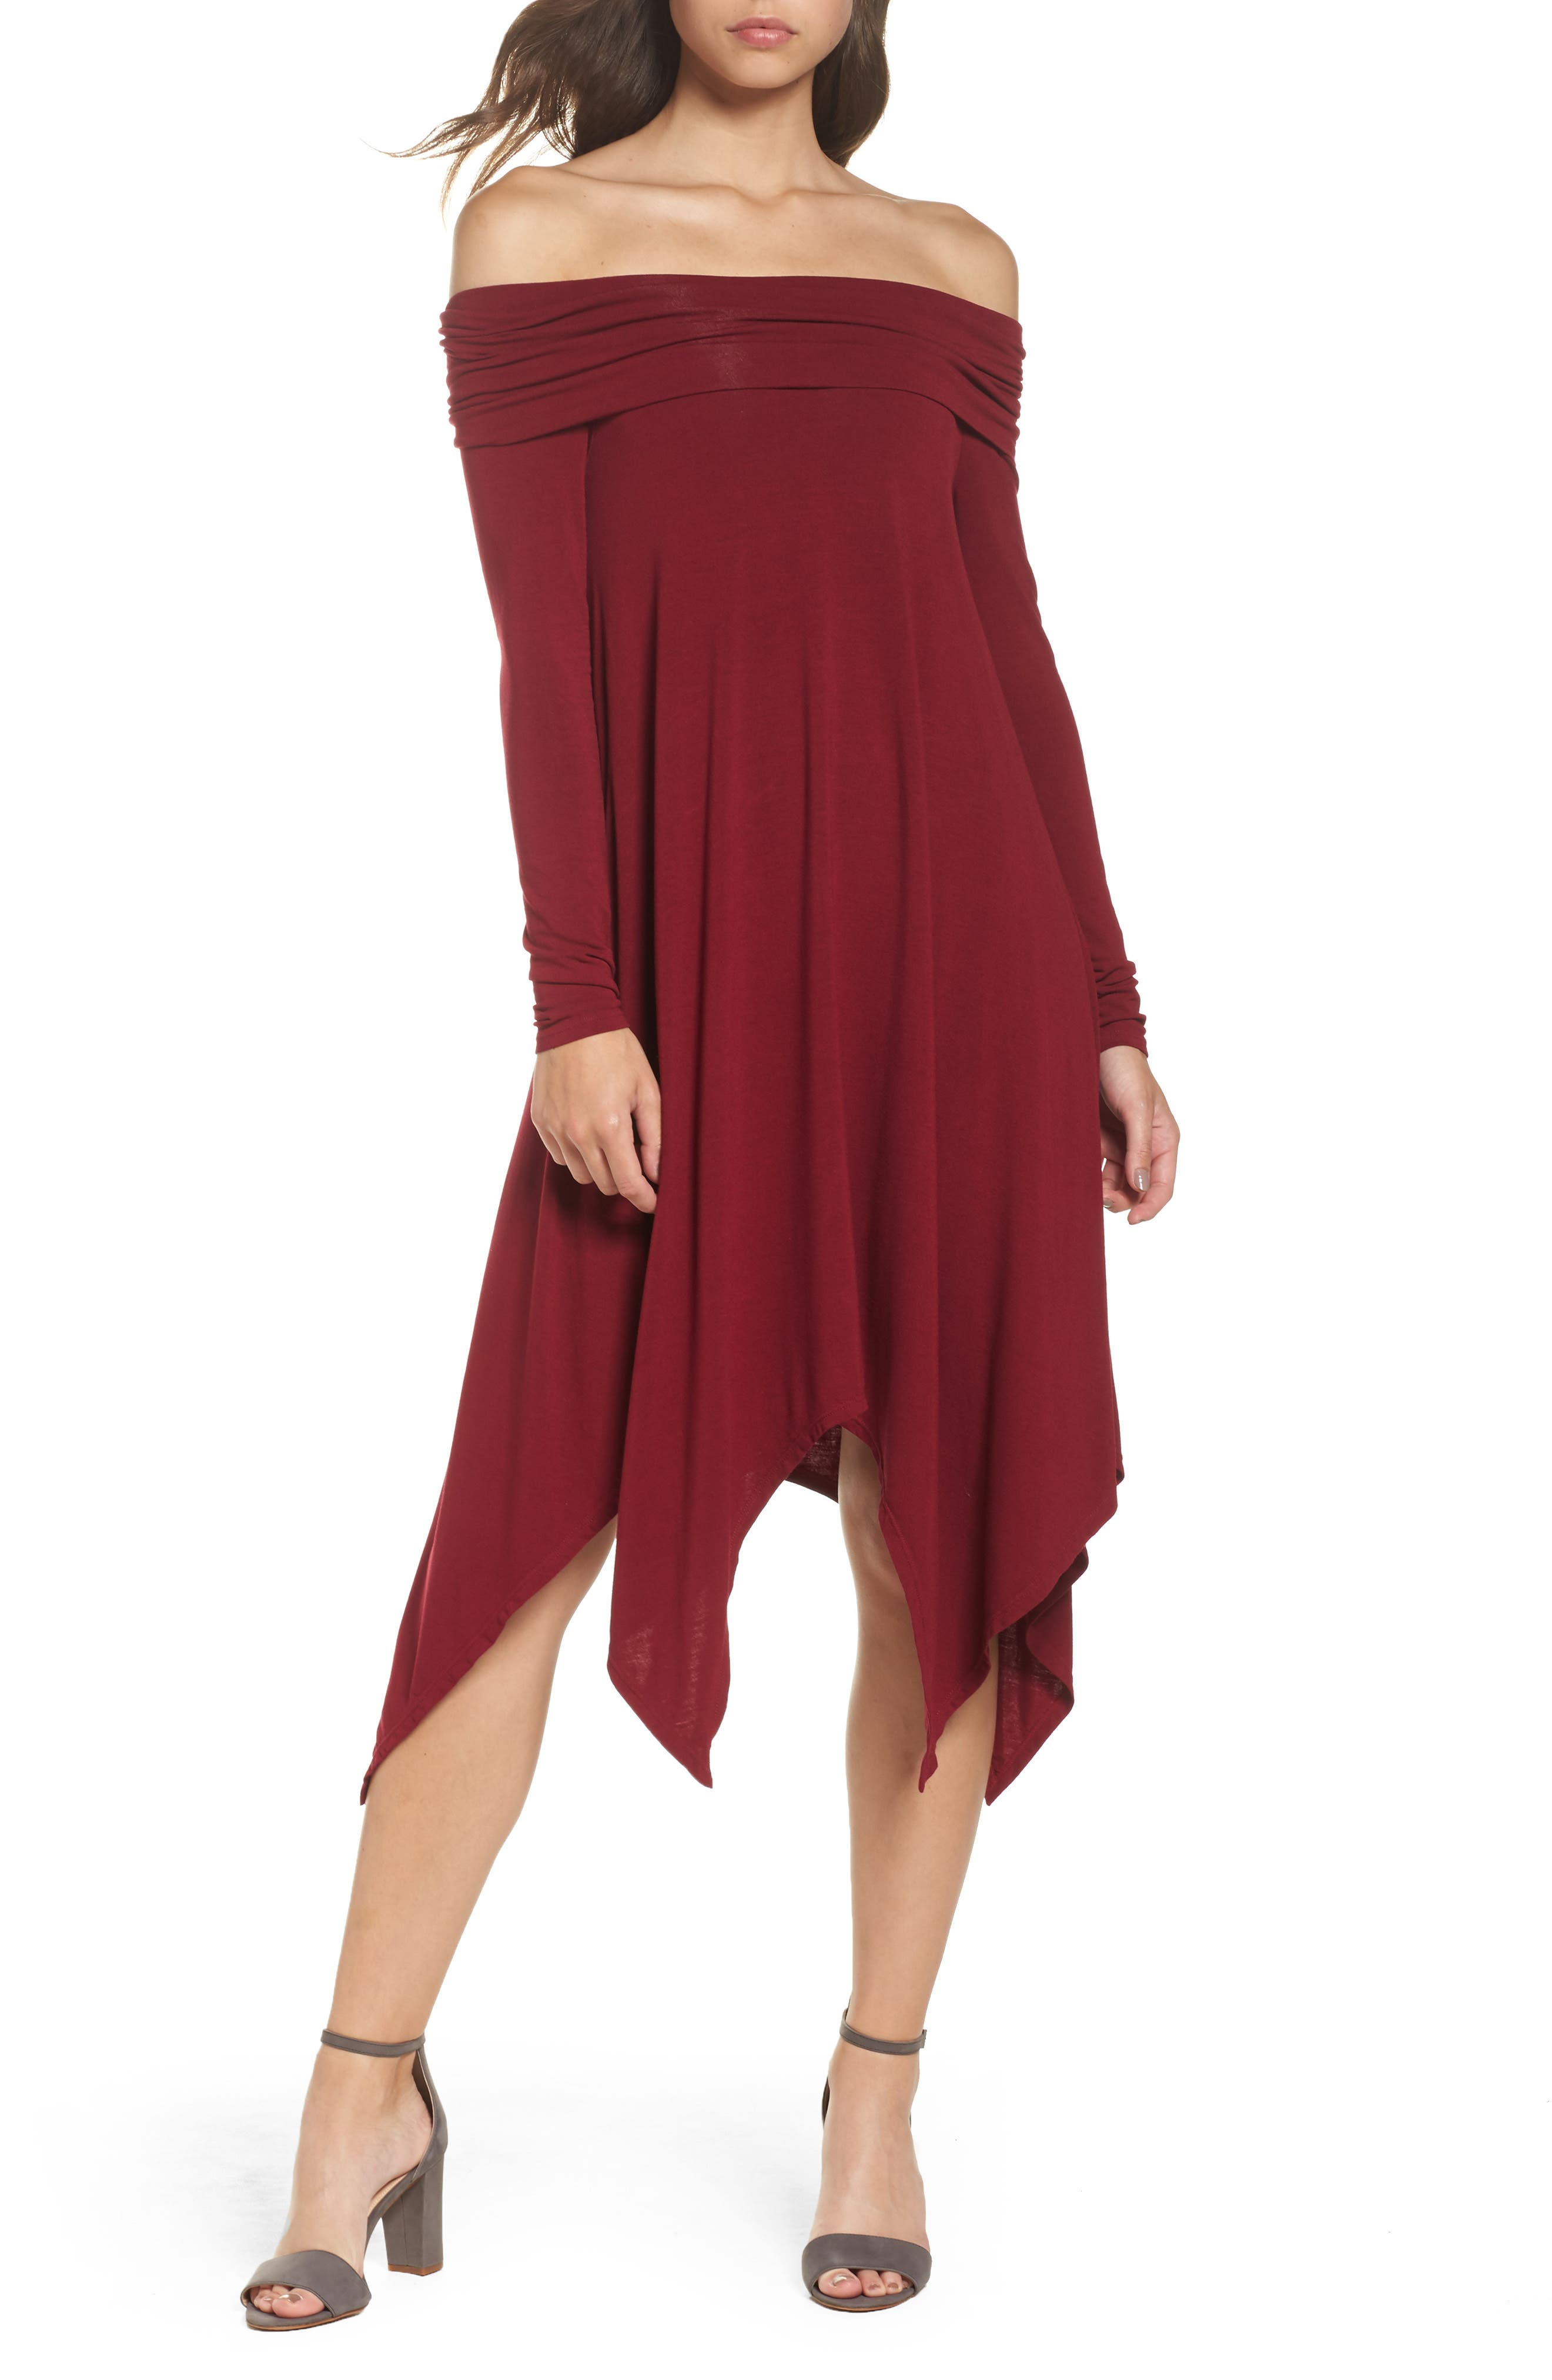 Alternate Image 1 Selected - BCBGMAXAZRIA Off the Shoulder Knit A-Line Dress